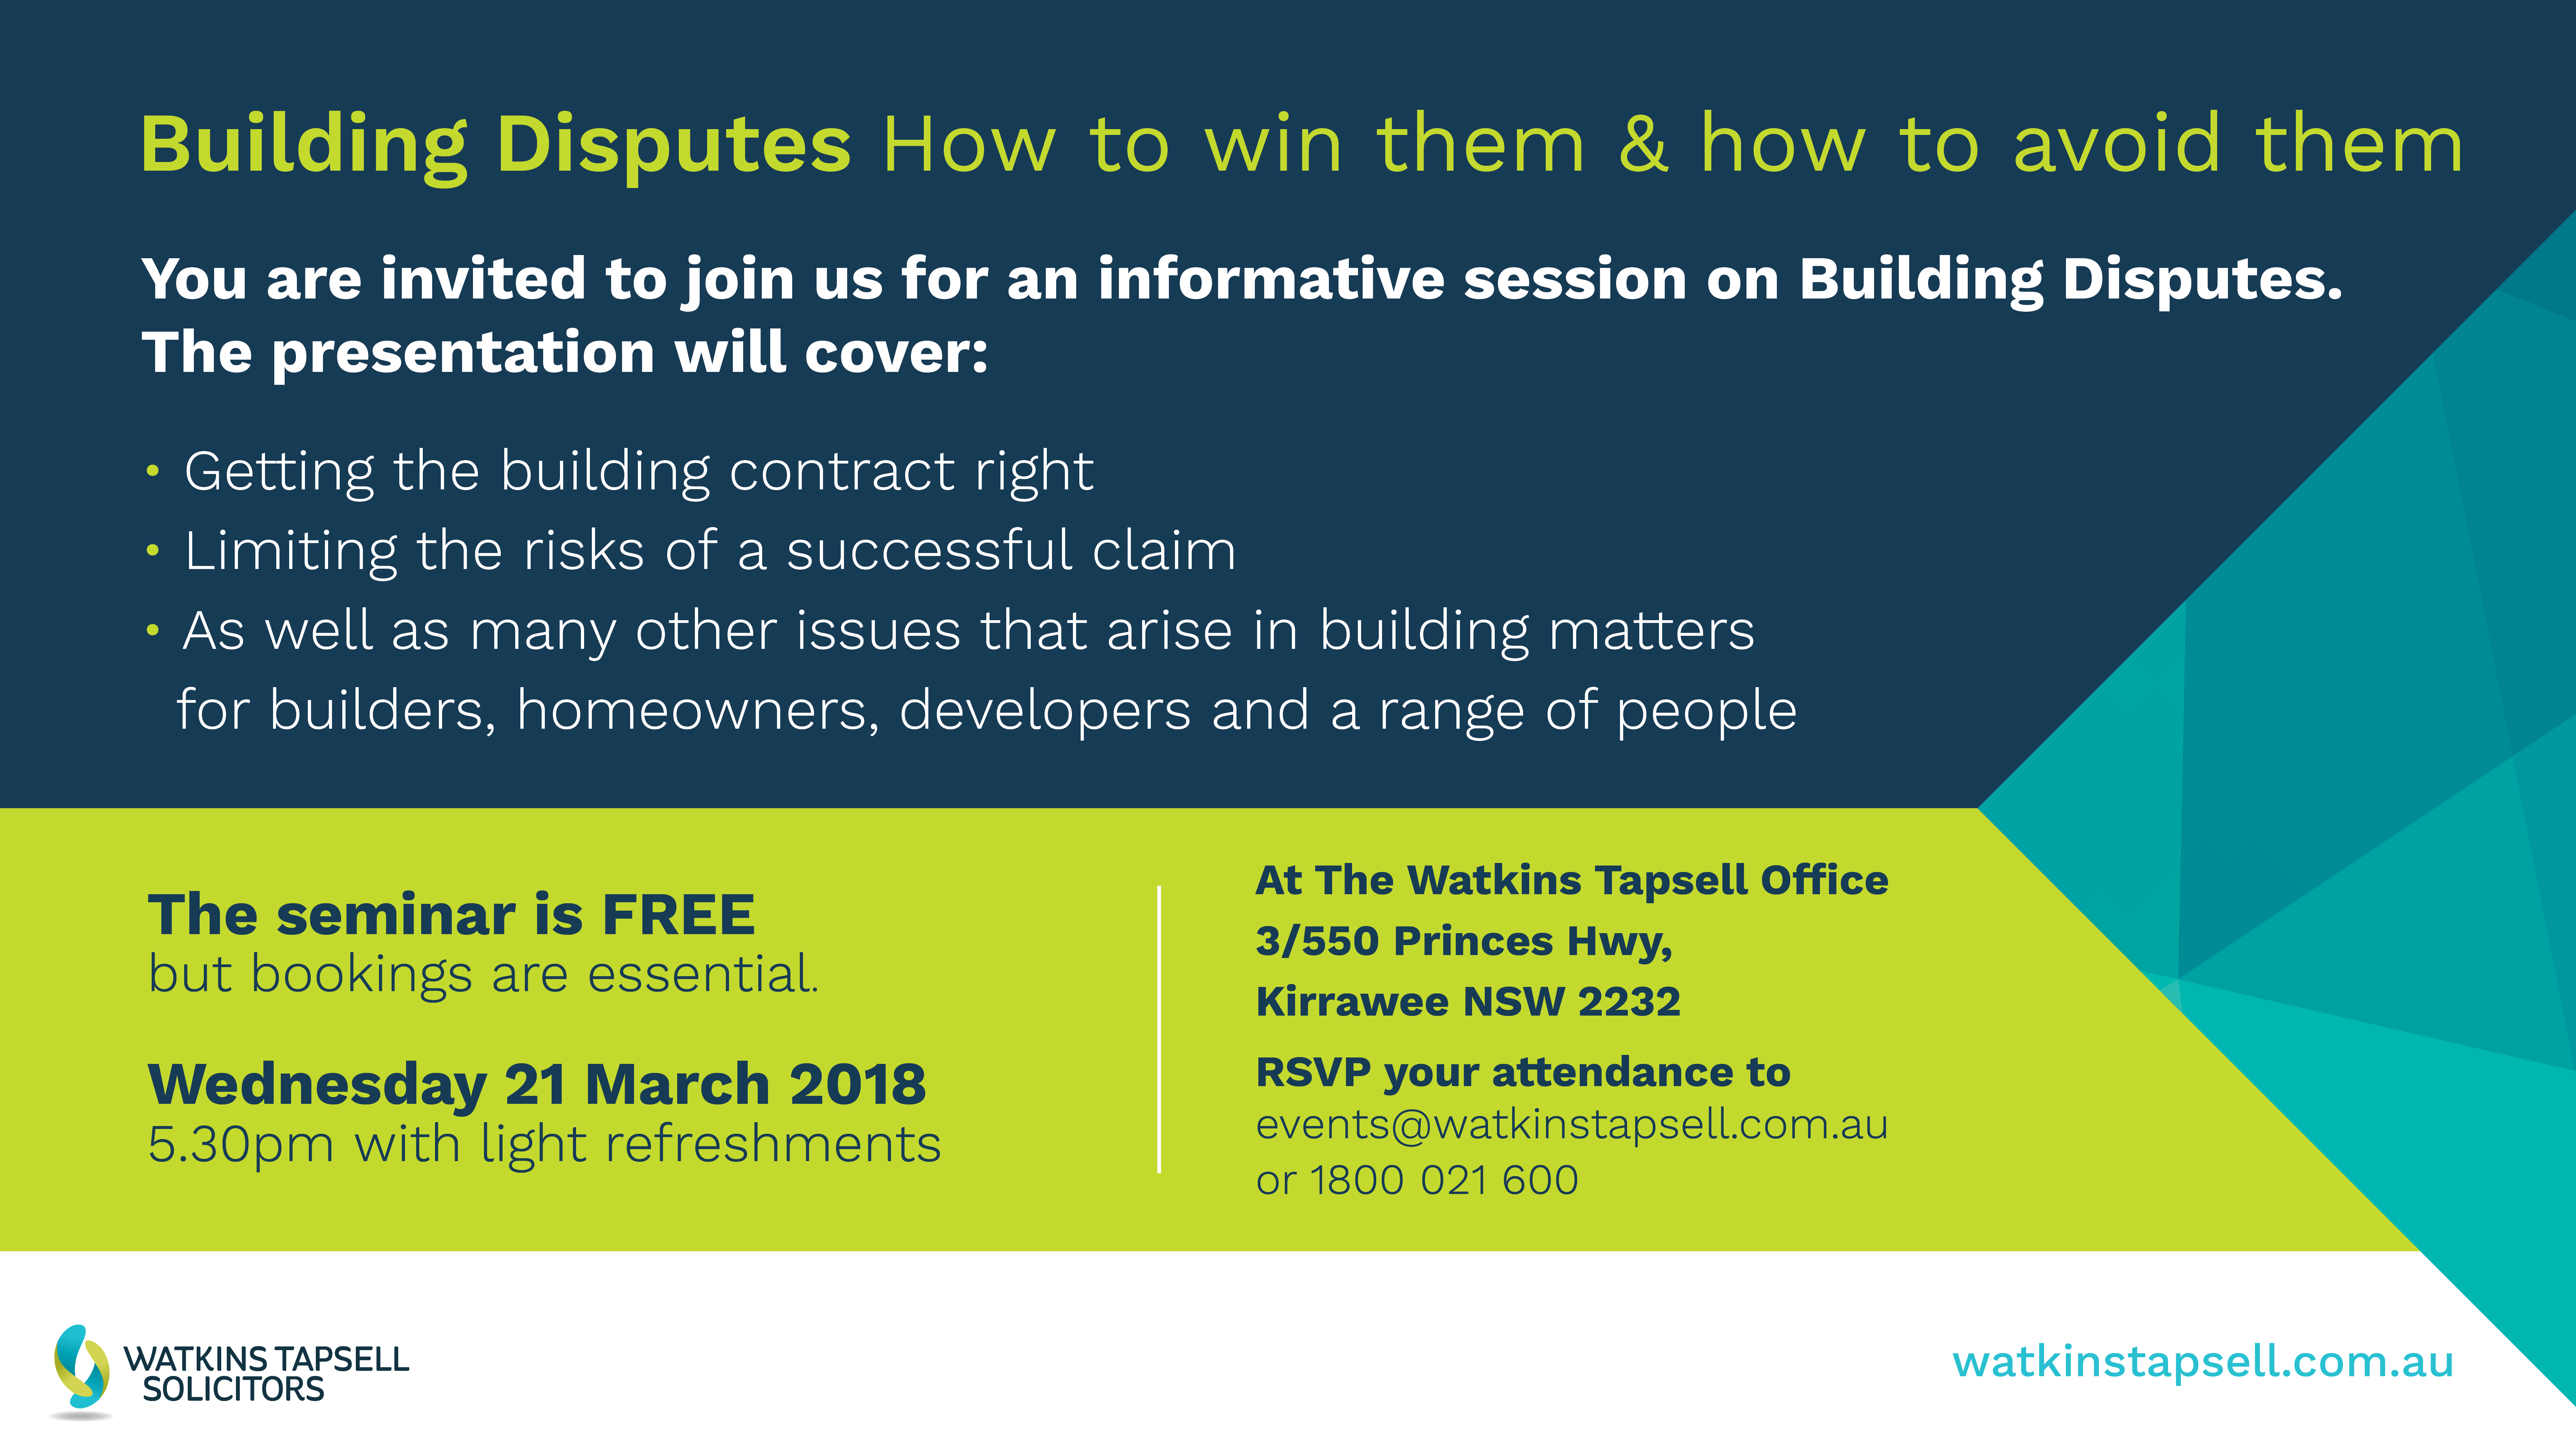 Building Disputes Information Session